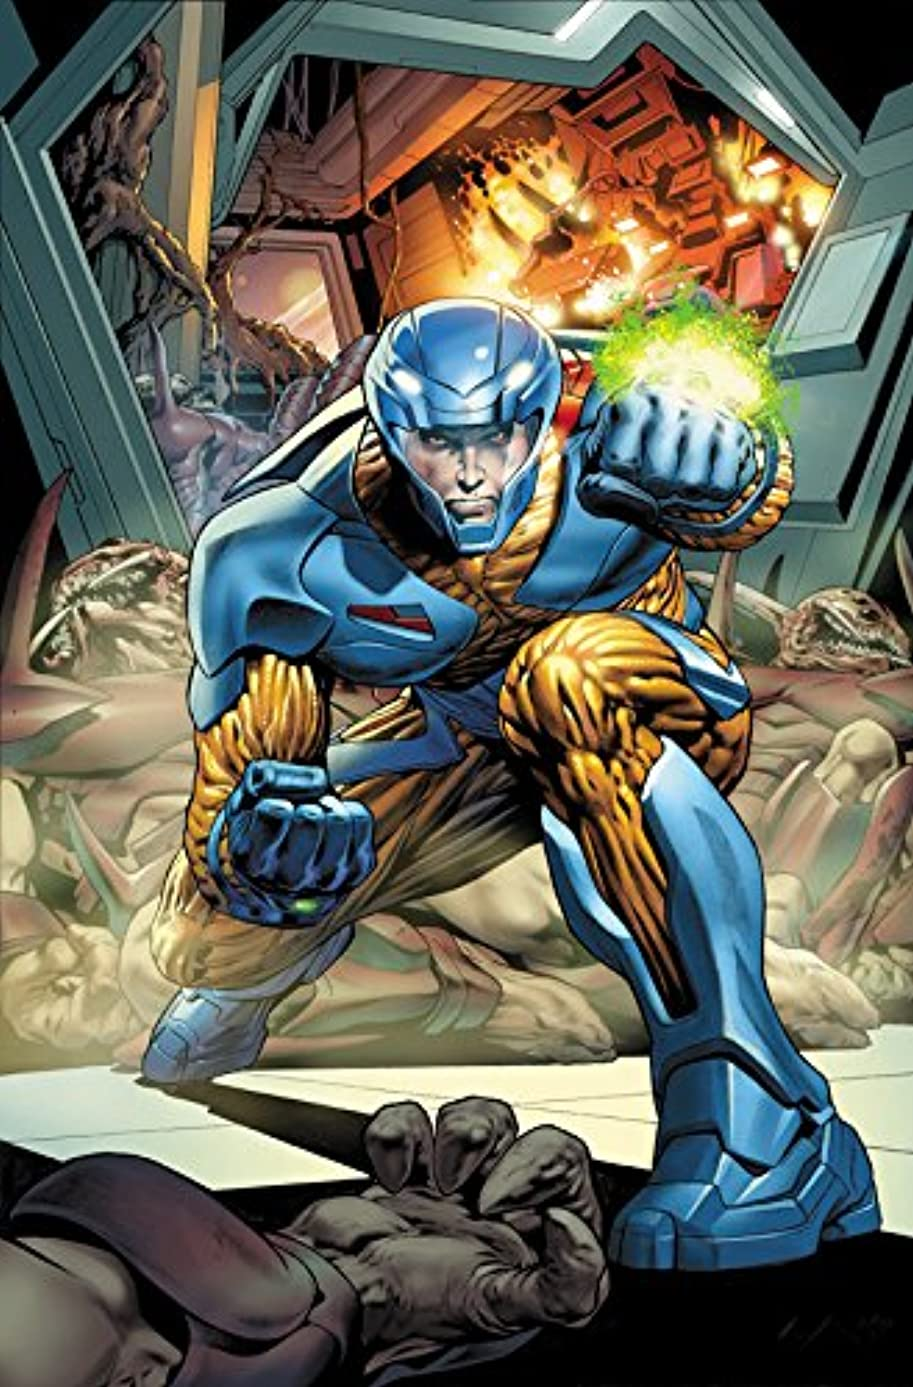 Lot of 1 Random X-O Manowar Comic - no duplication